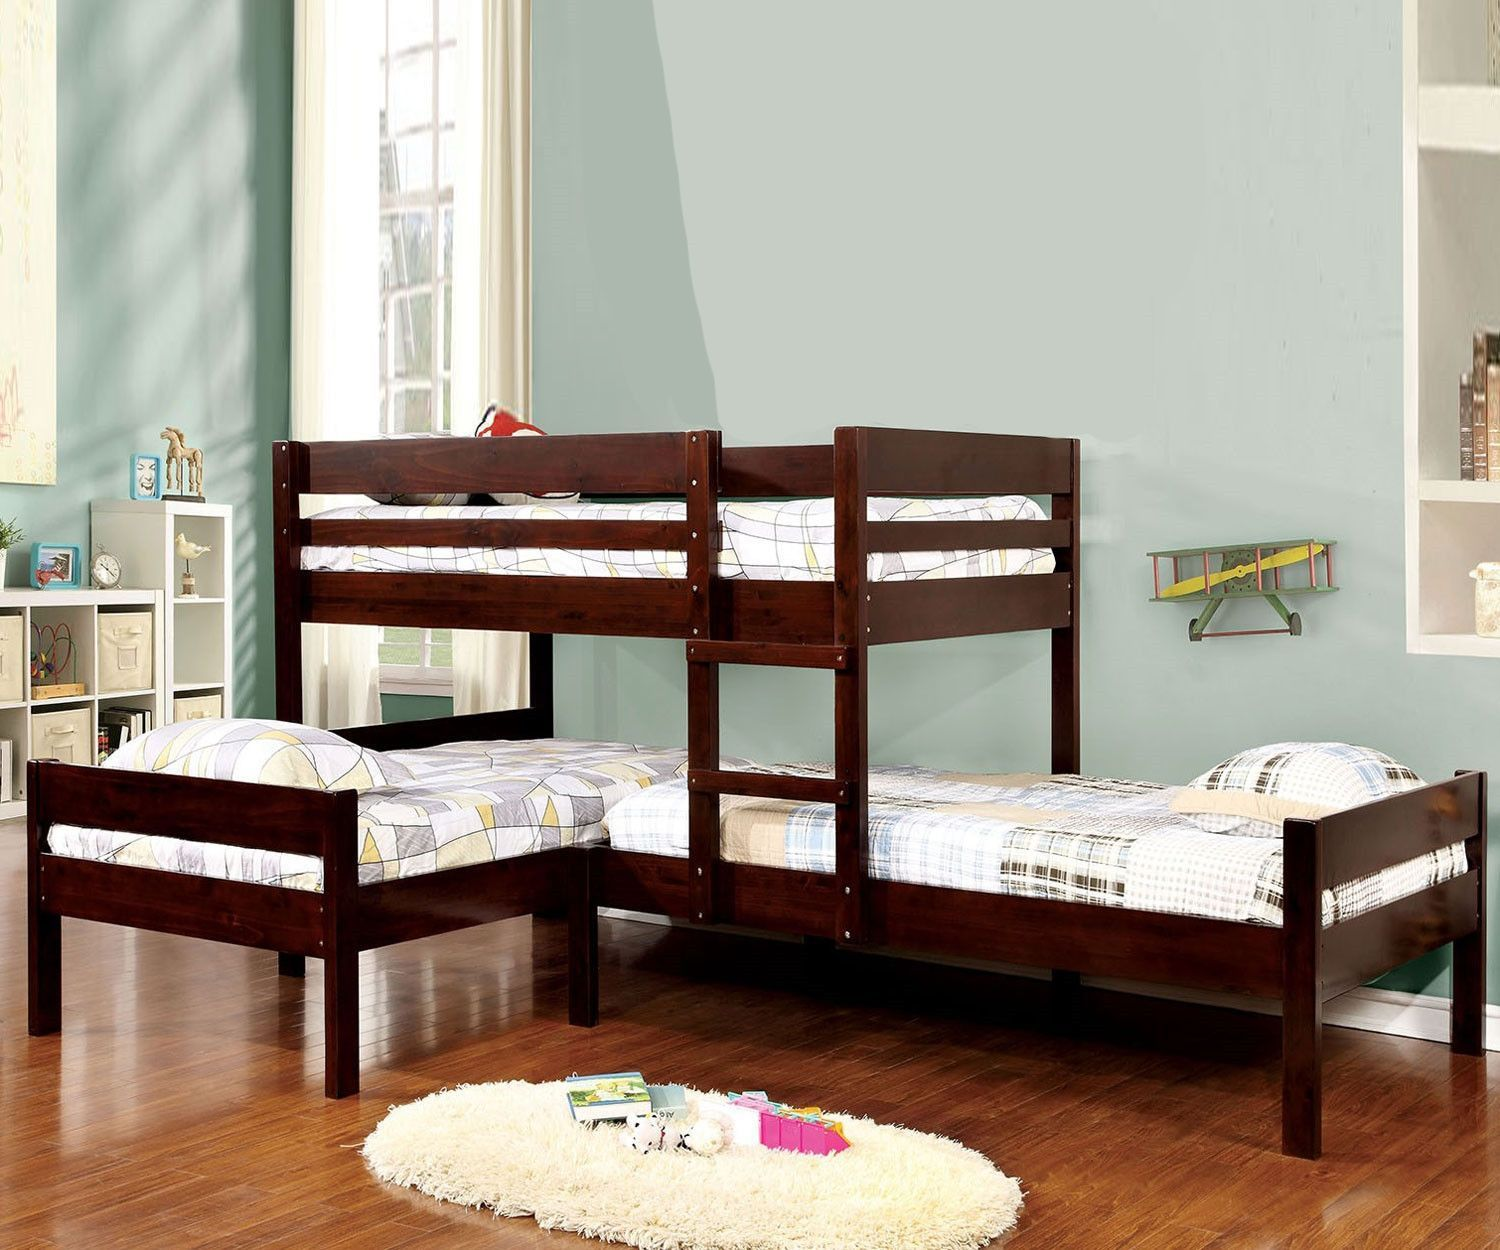 Corner Triple Bunk Bed Triple bunk bed, Bunk bed with